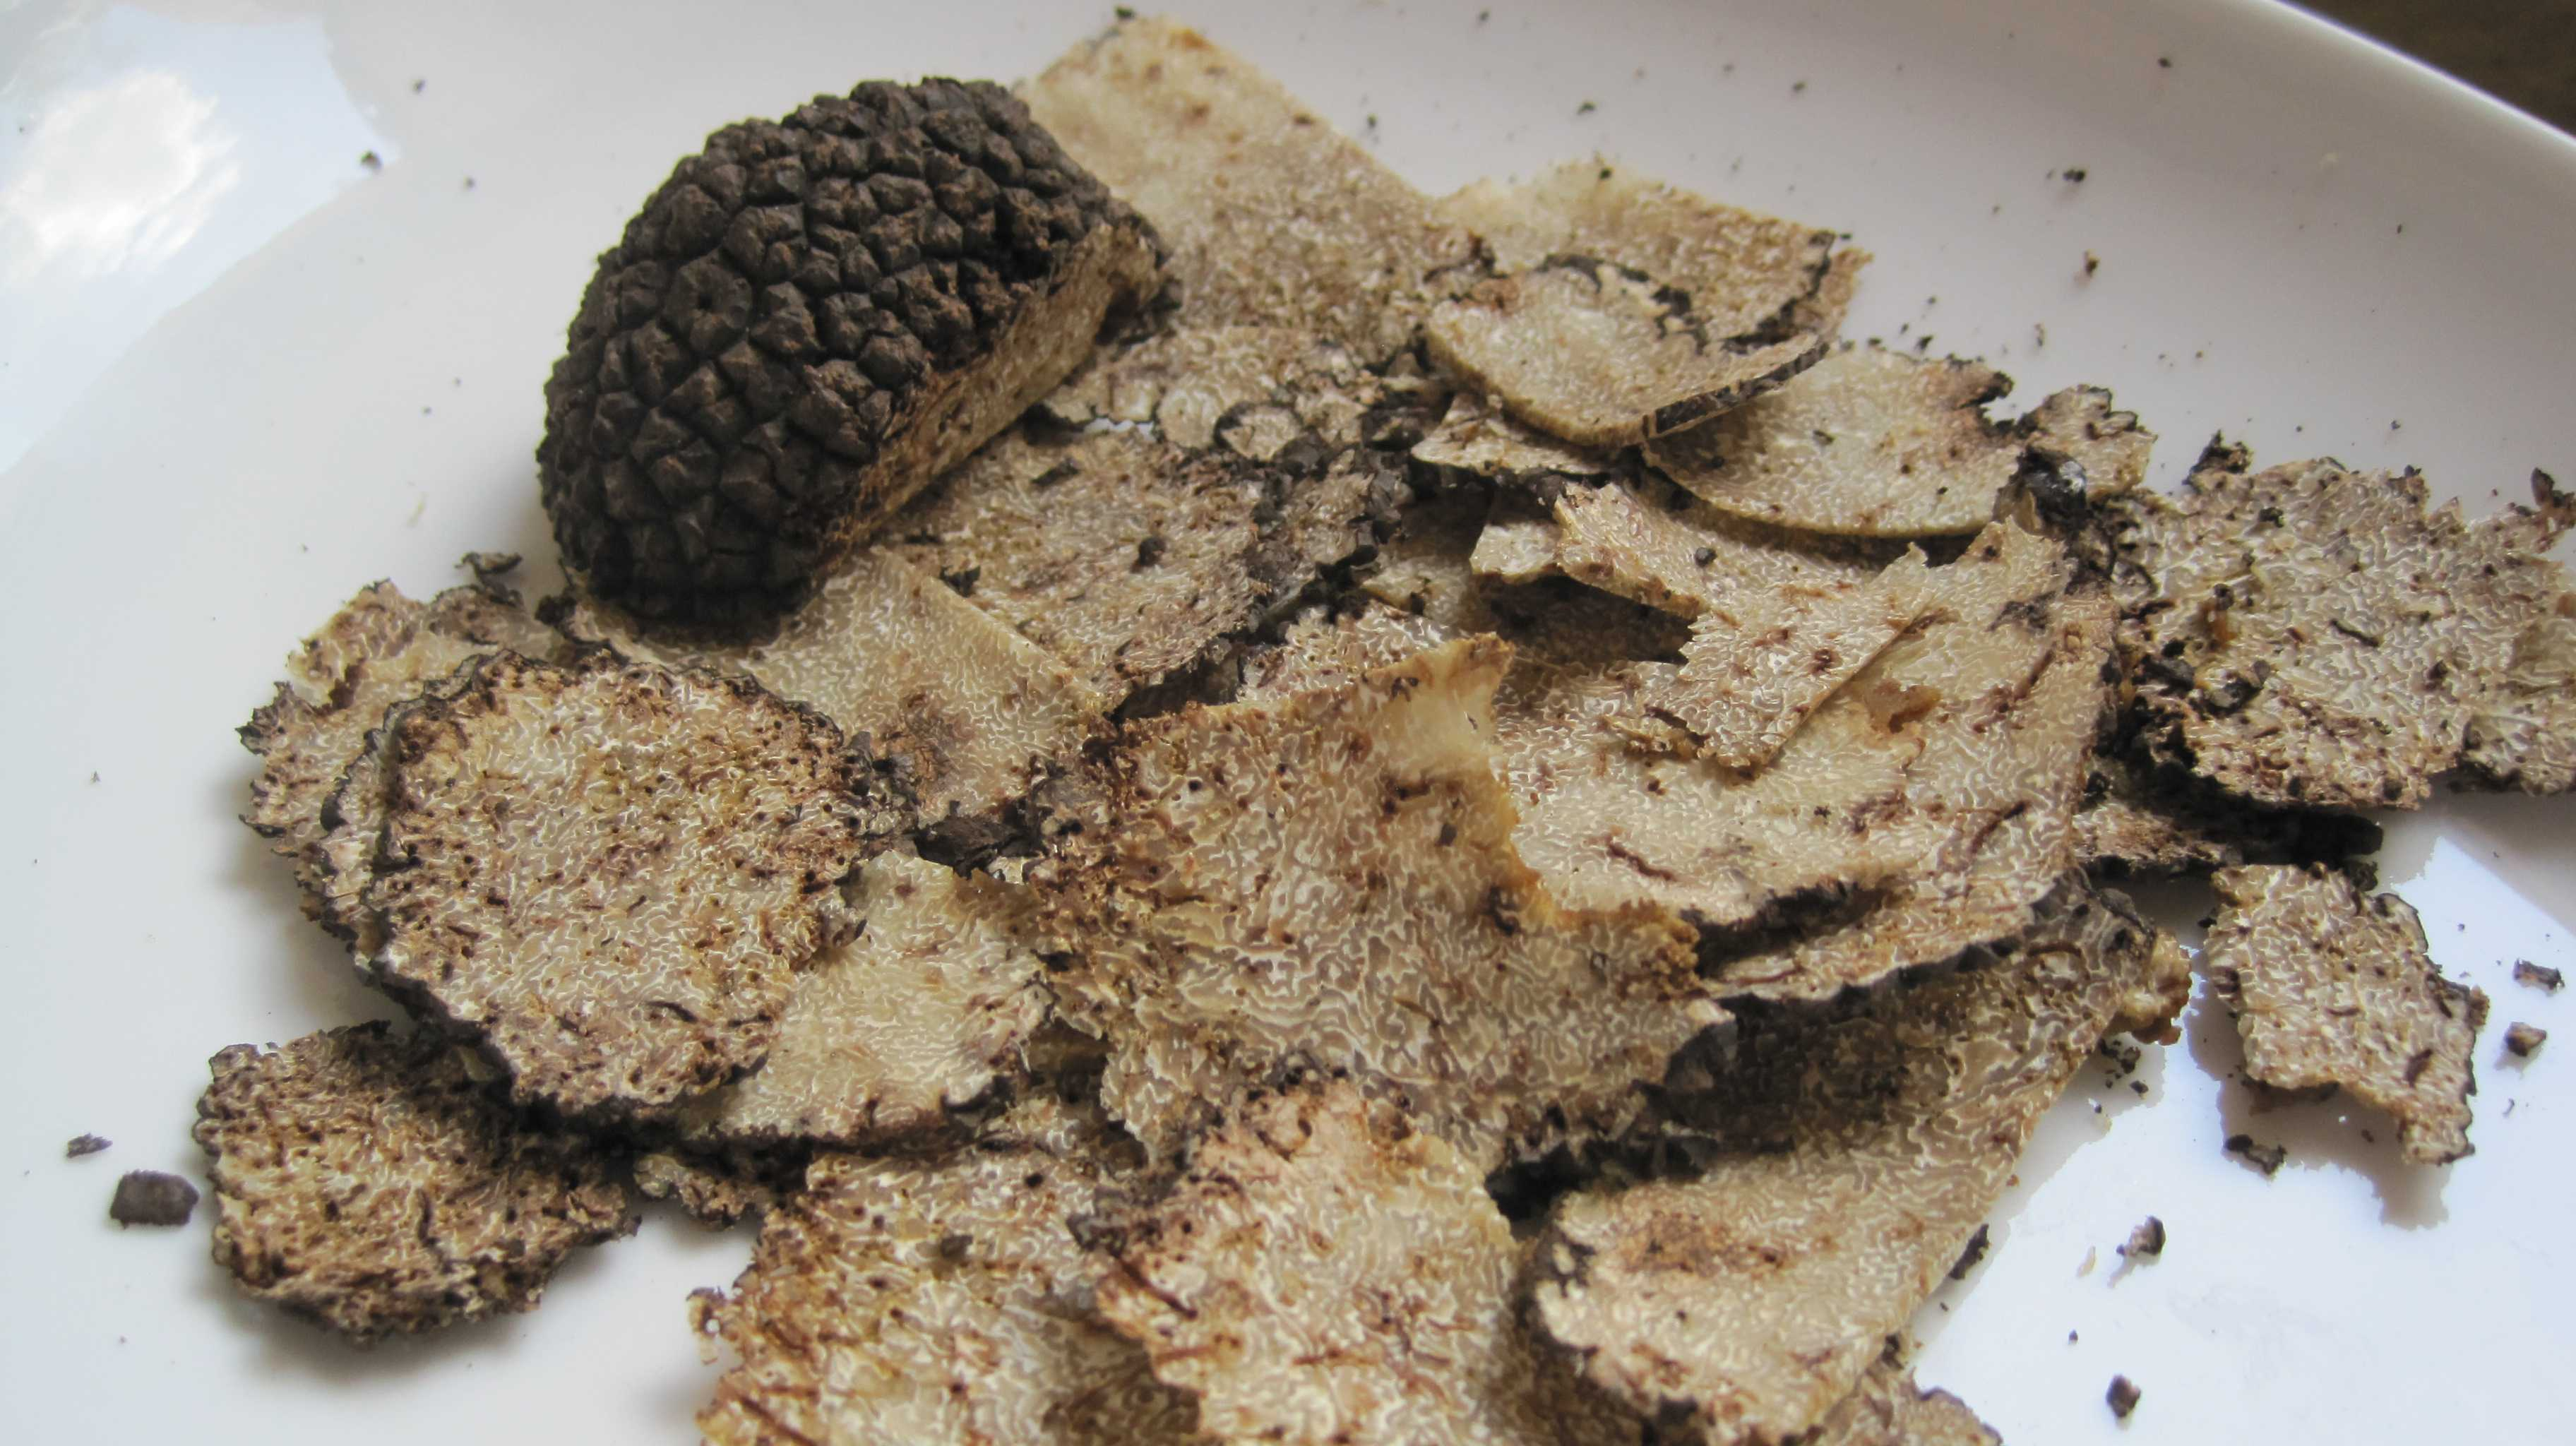 how much is an ounce of truffles